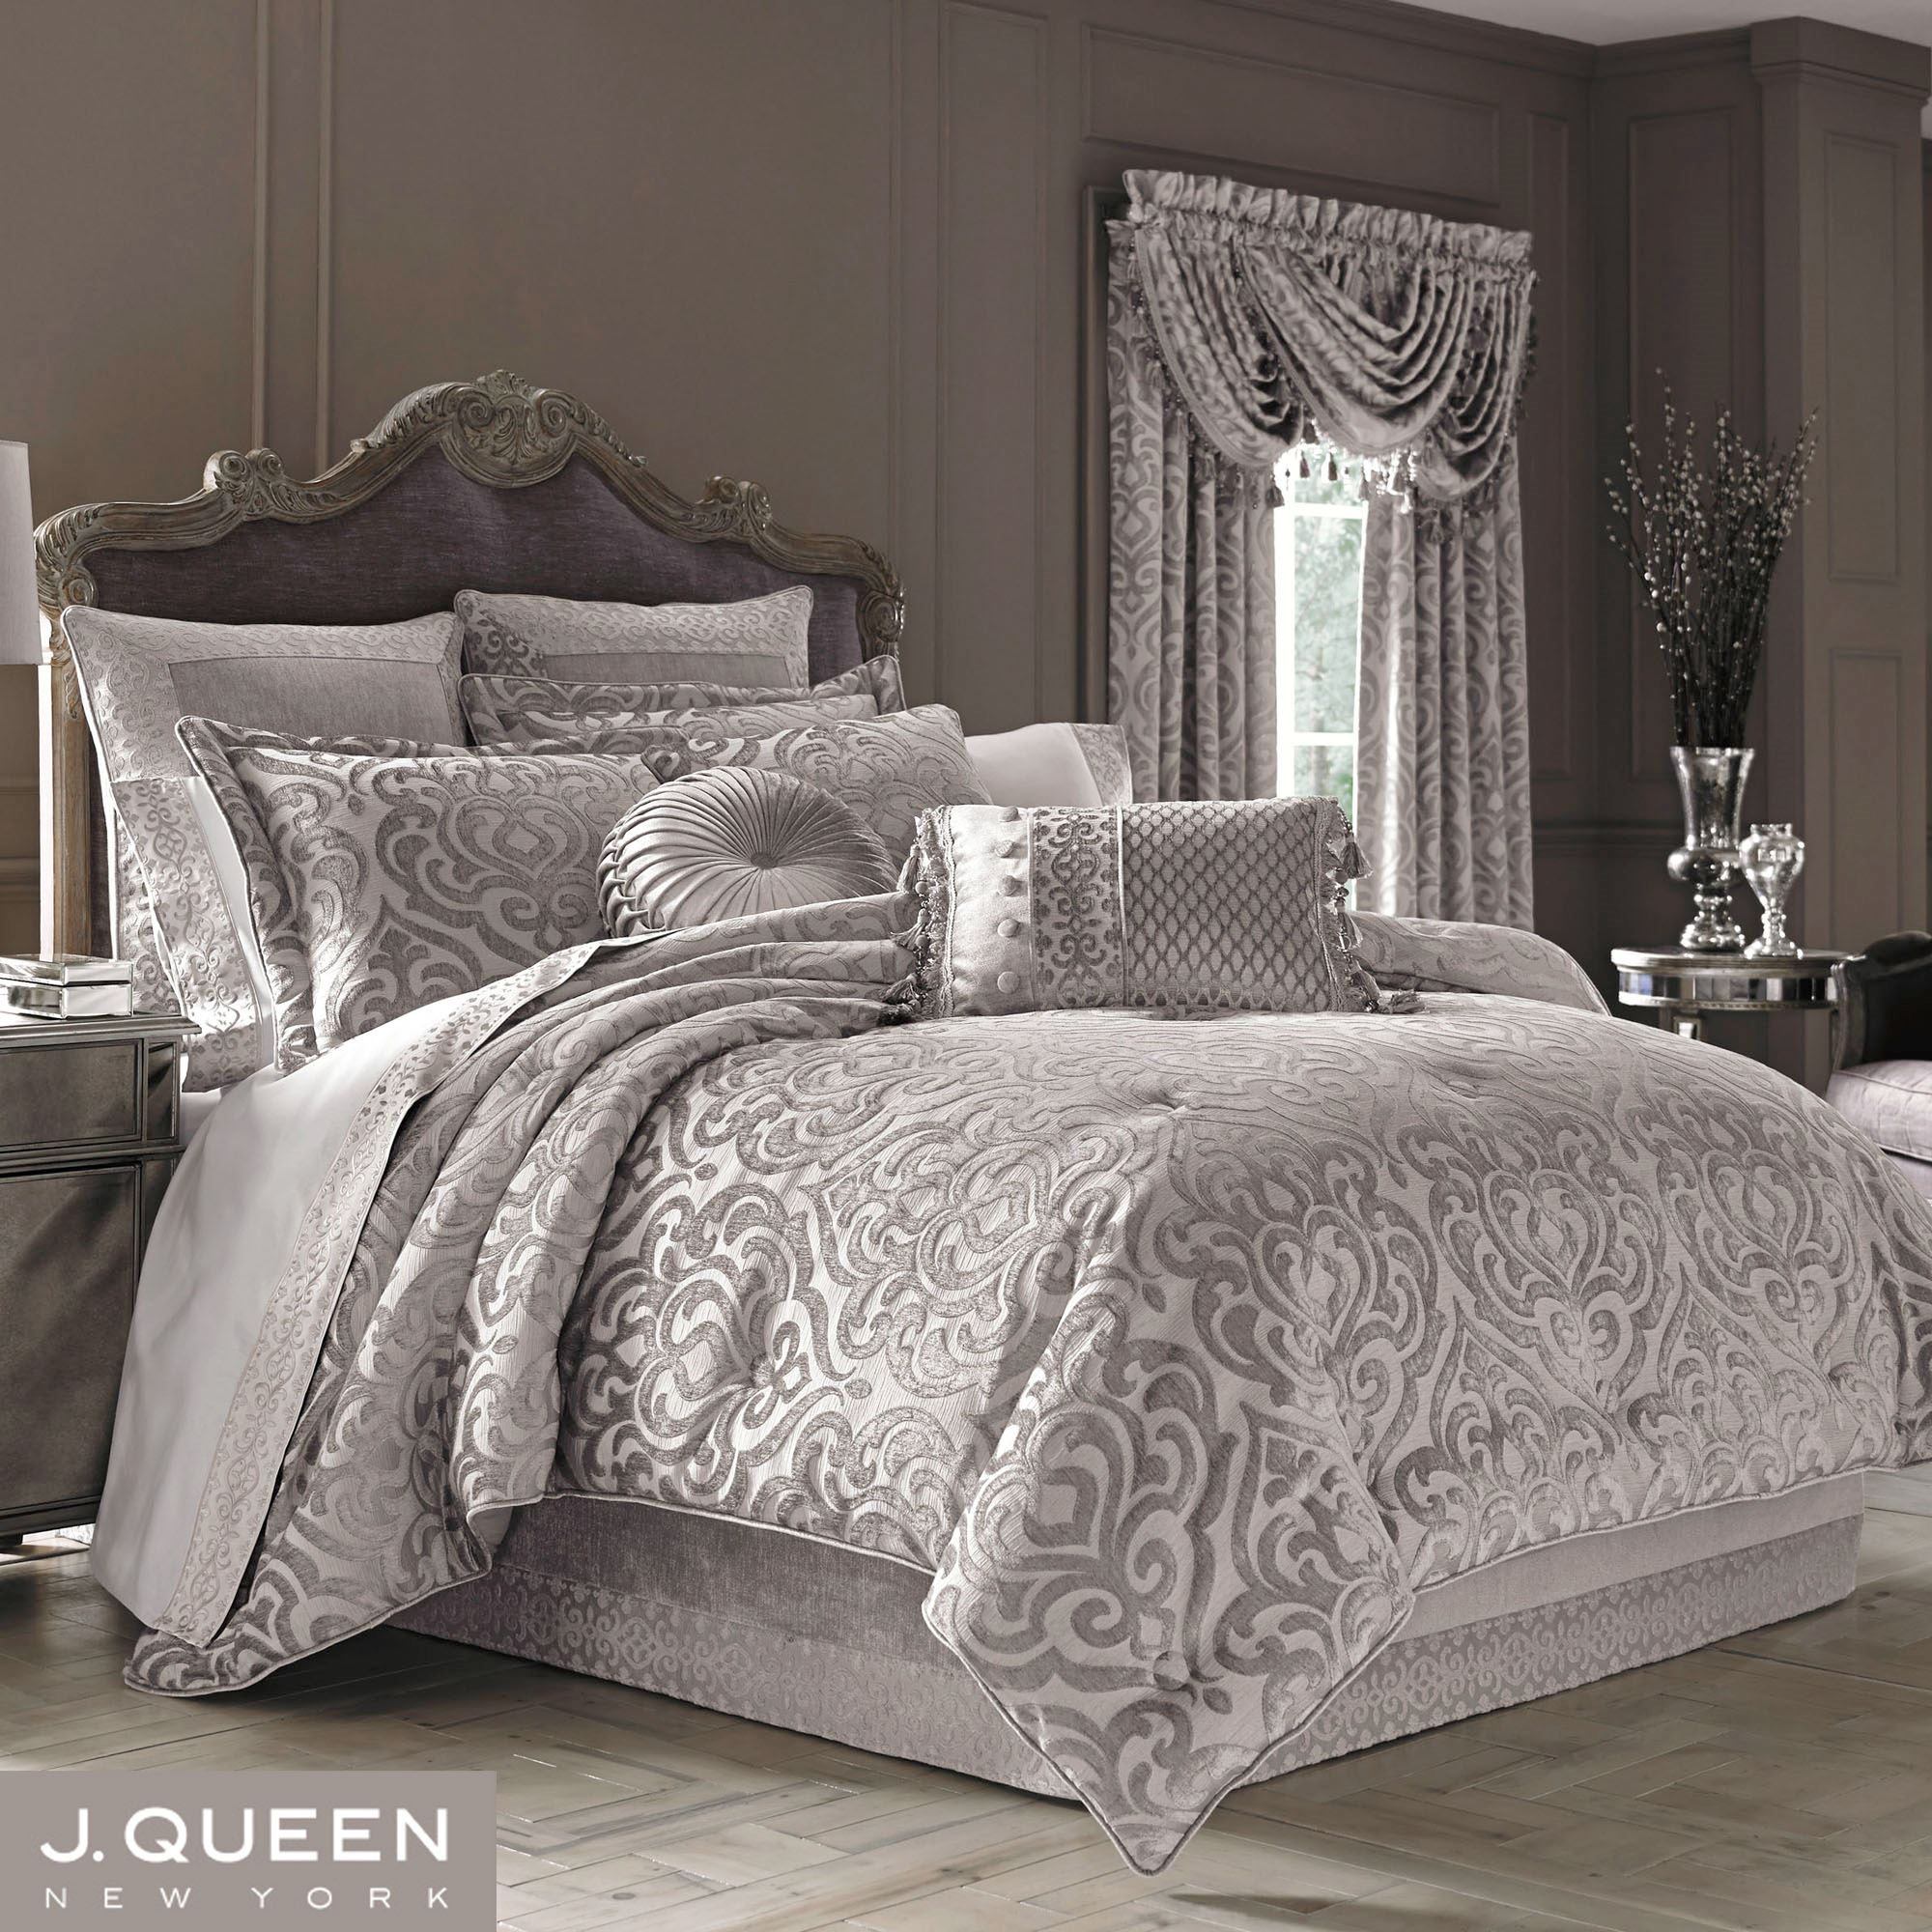 Bedding Decor: Sicily Silver Gray Medallion Comforter Bedding By J Queen